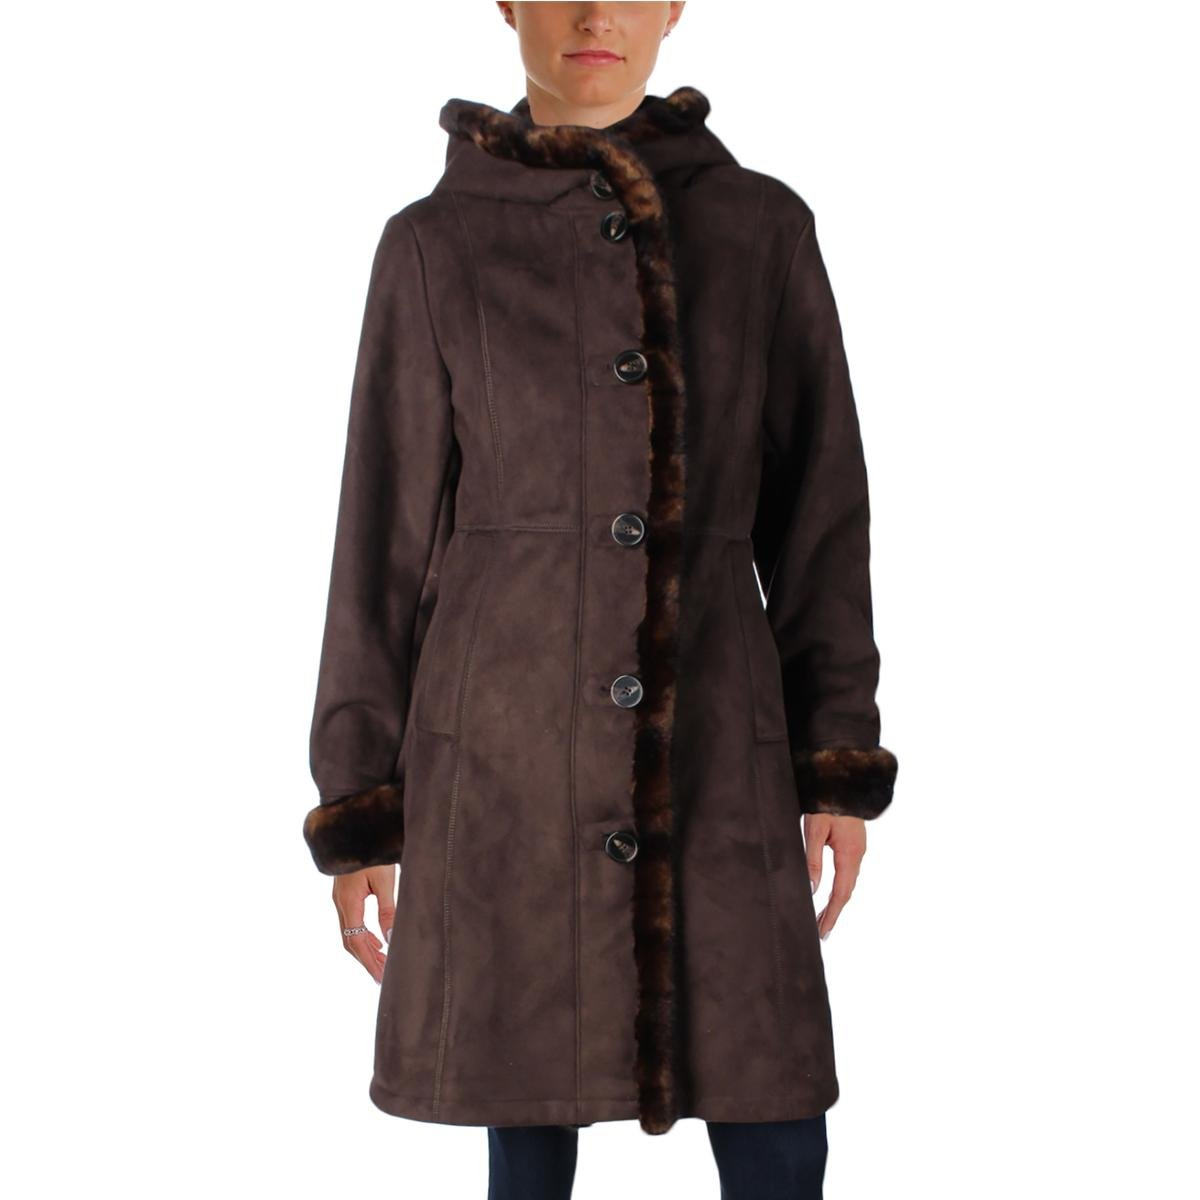 Gallery Womens Petites Faux Suede Faux Fur Lined Pea Coat Brown PL by Gallery (Image #1)